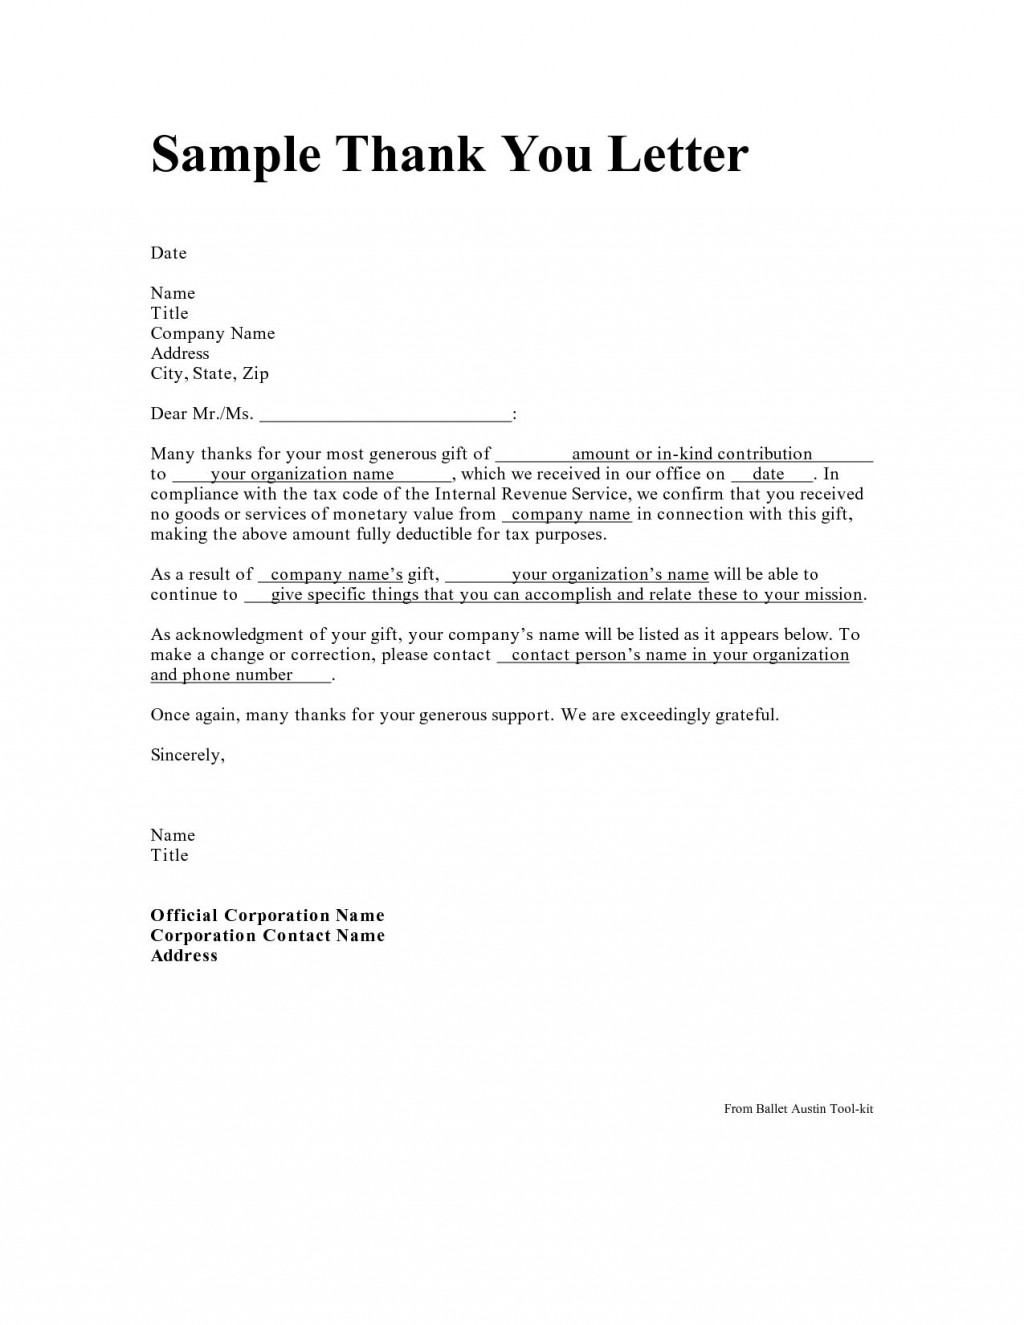 005 Incredible Donor Thank You Letter Template Concept  Donation For Church CharitableLarge